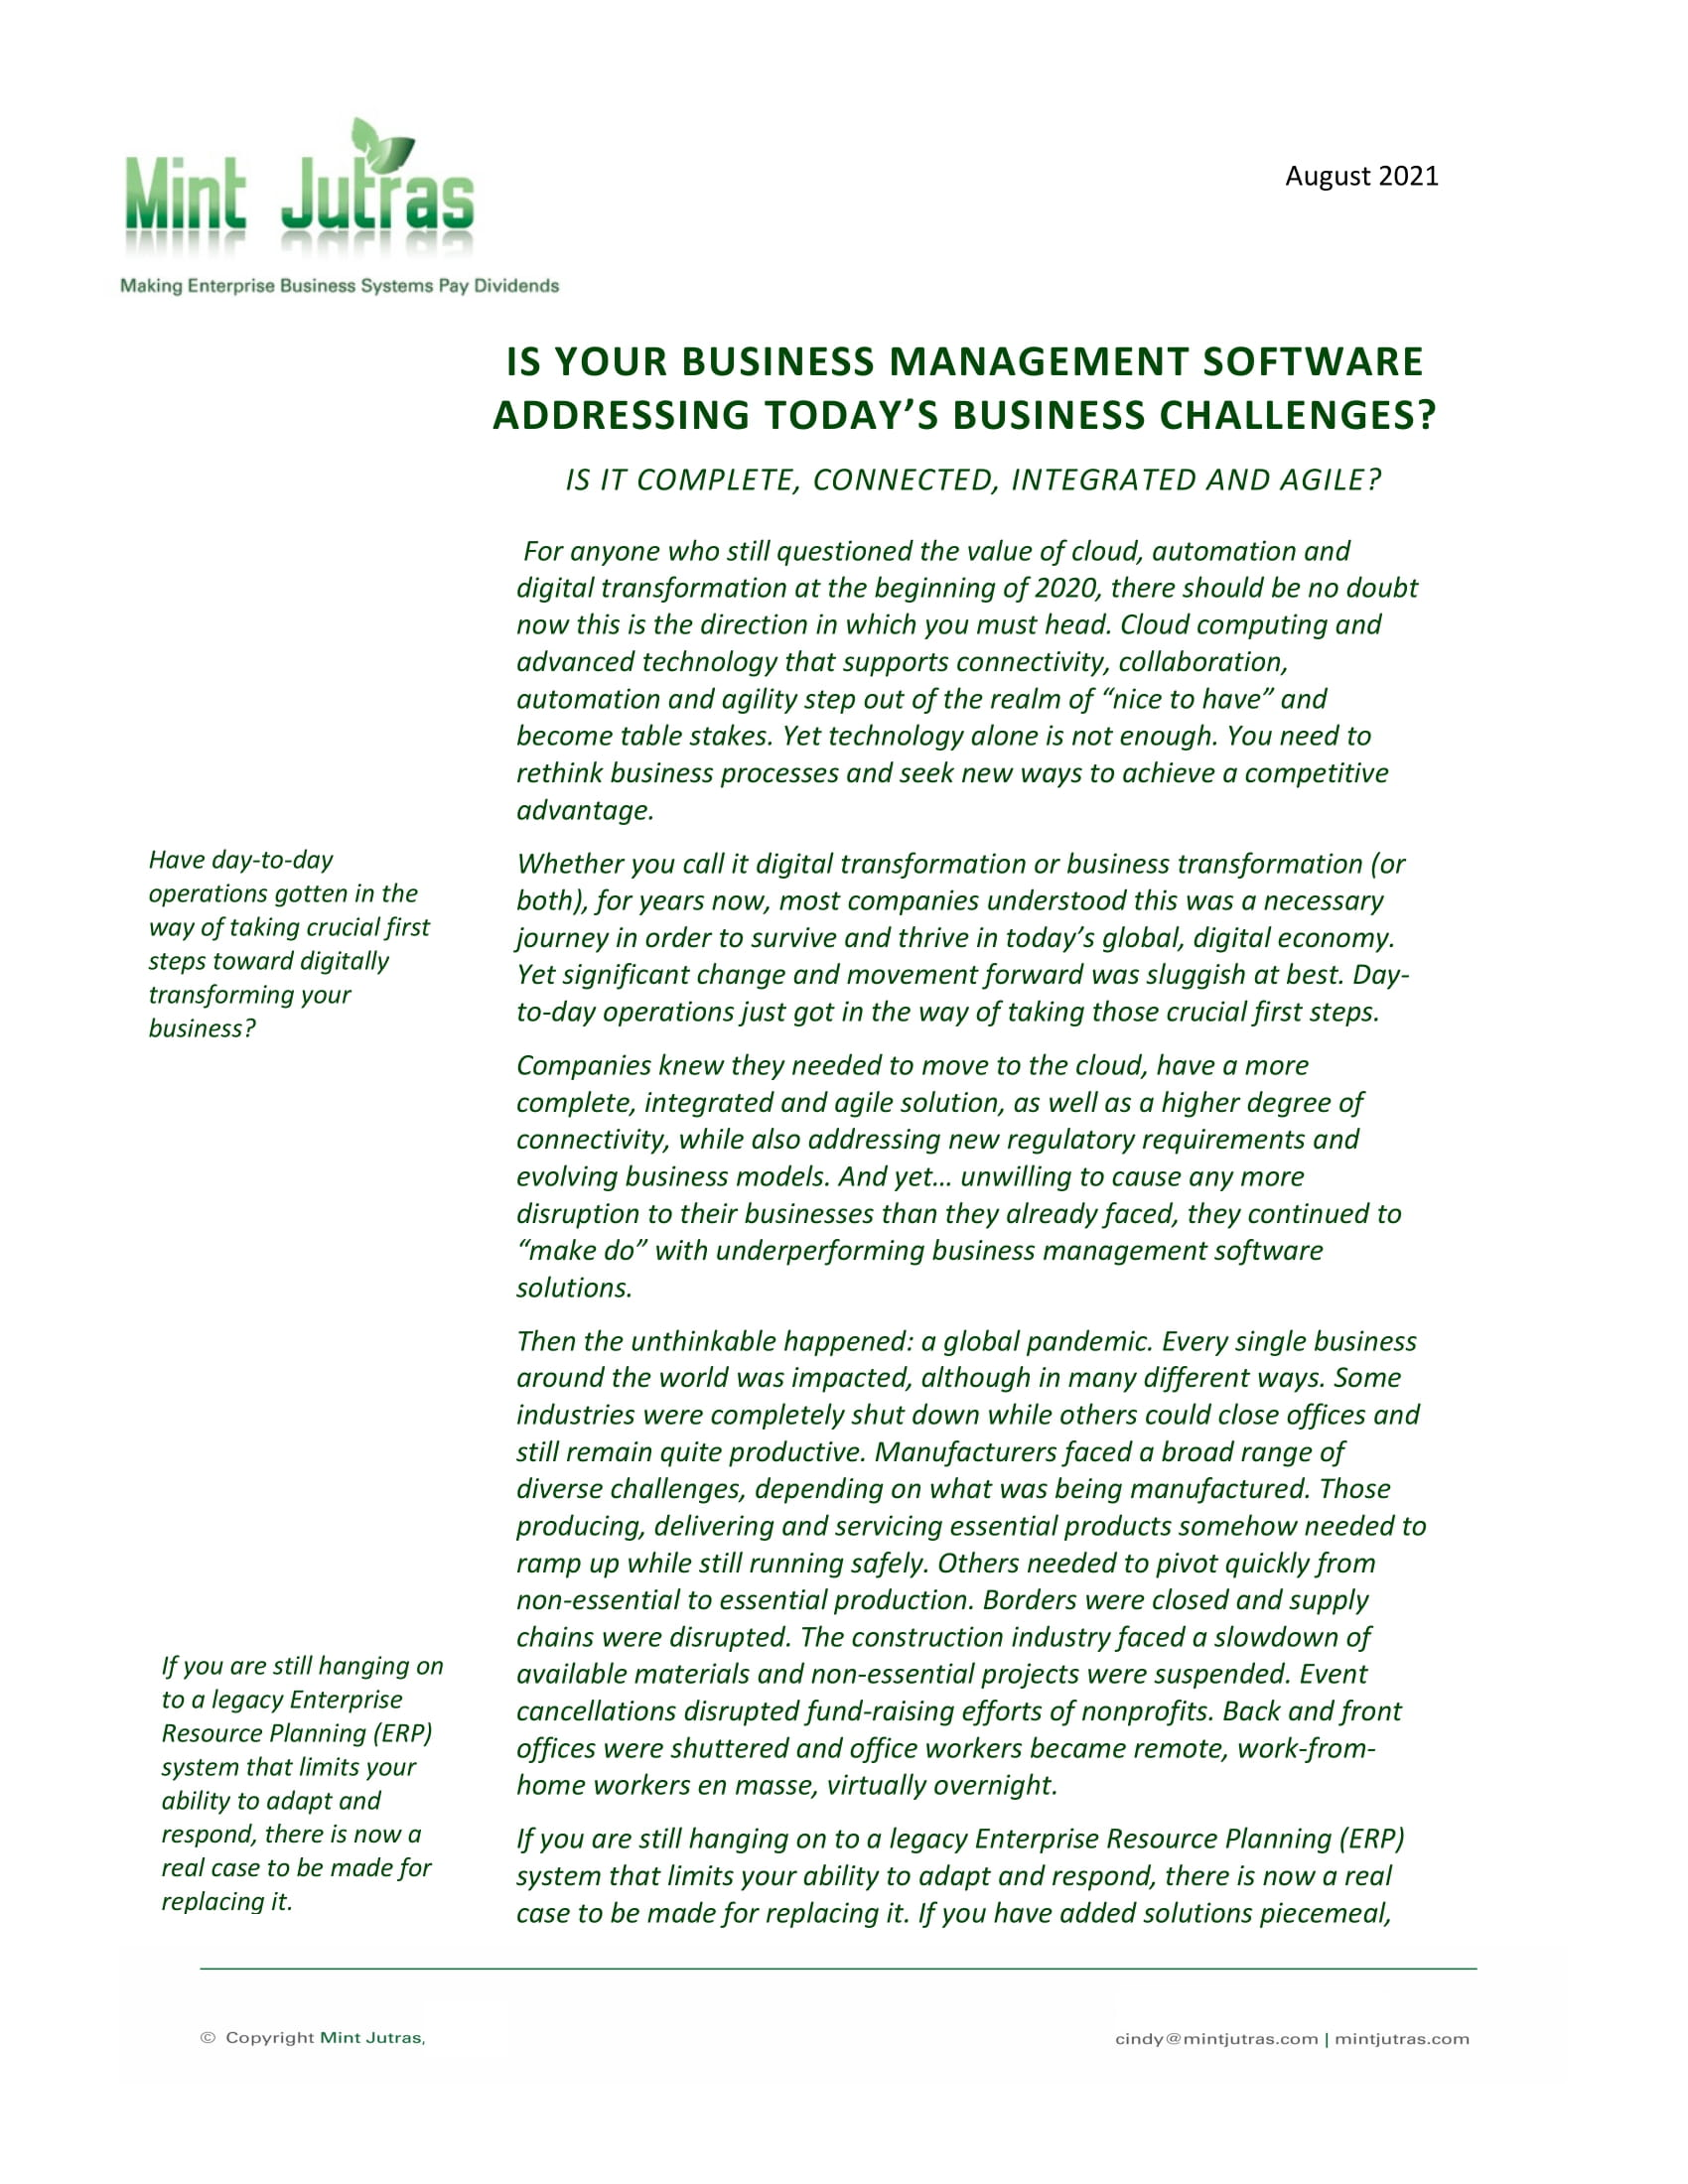 Time to Replace Your Legacy ERP System?